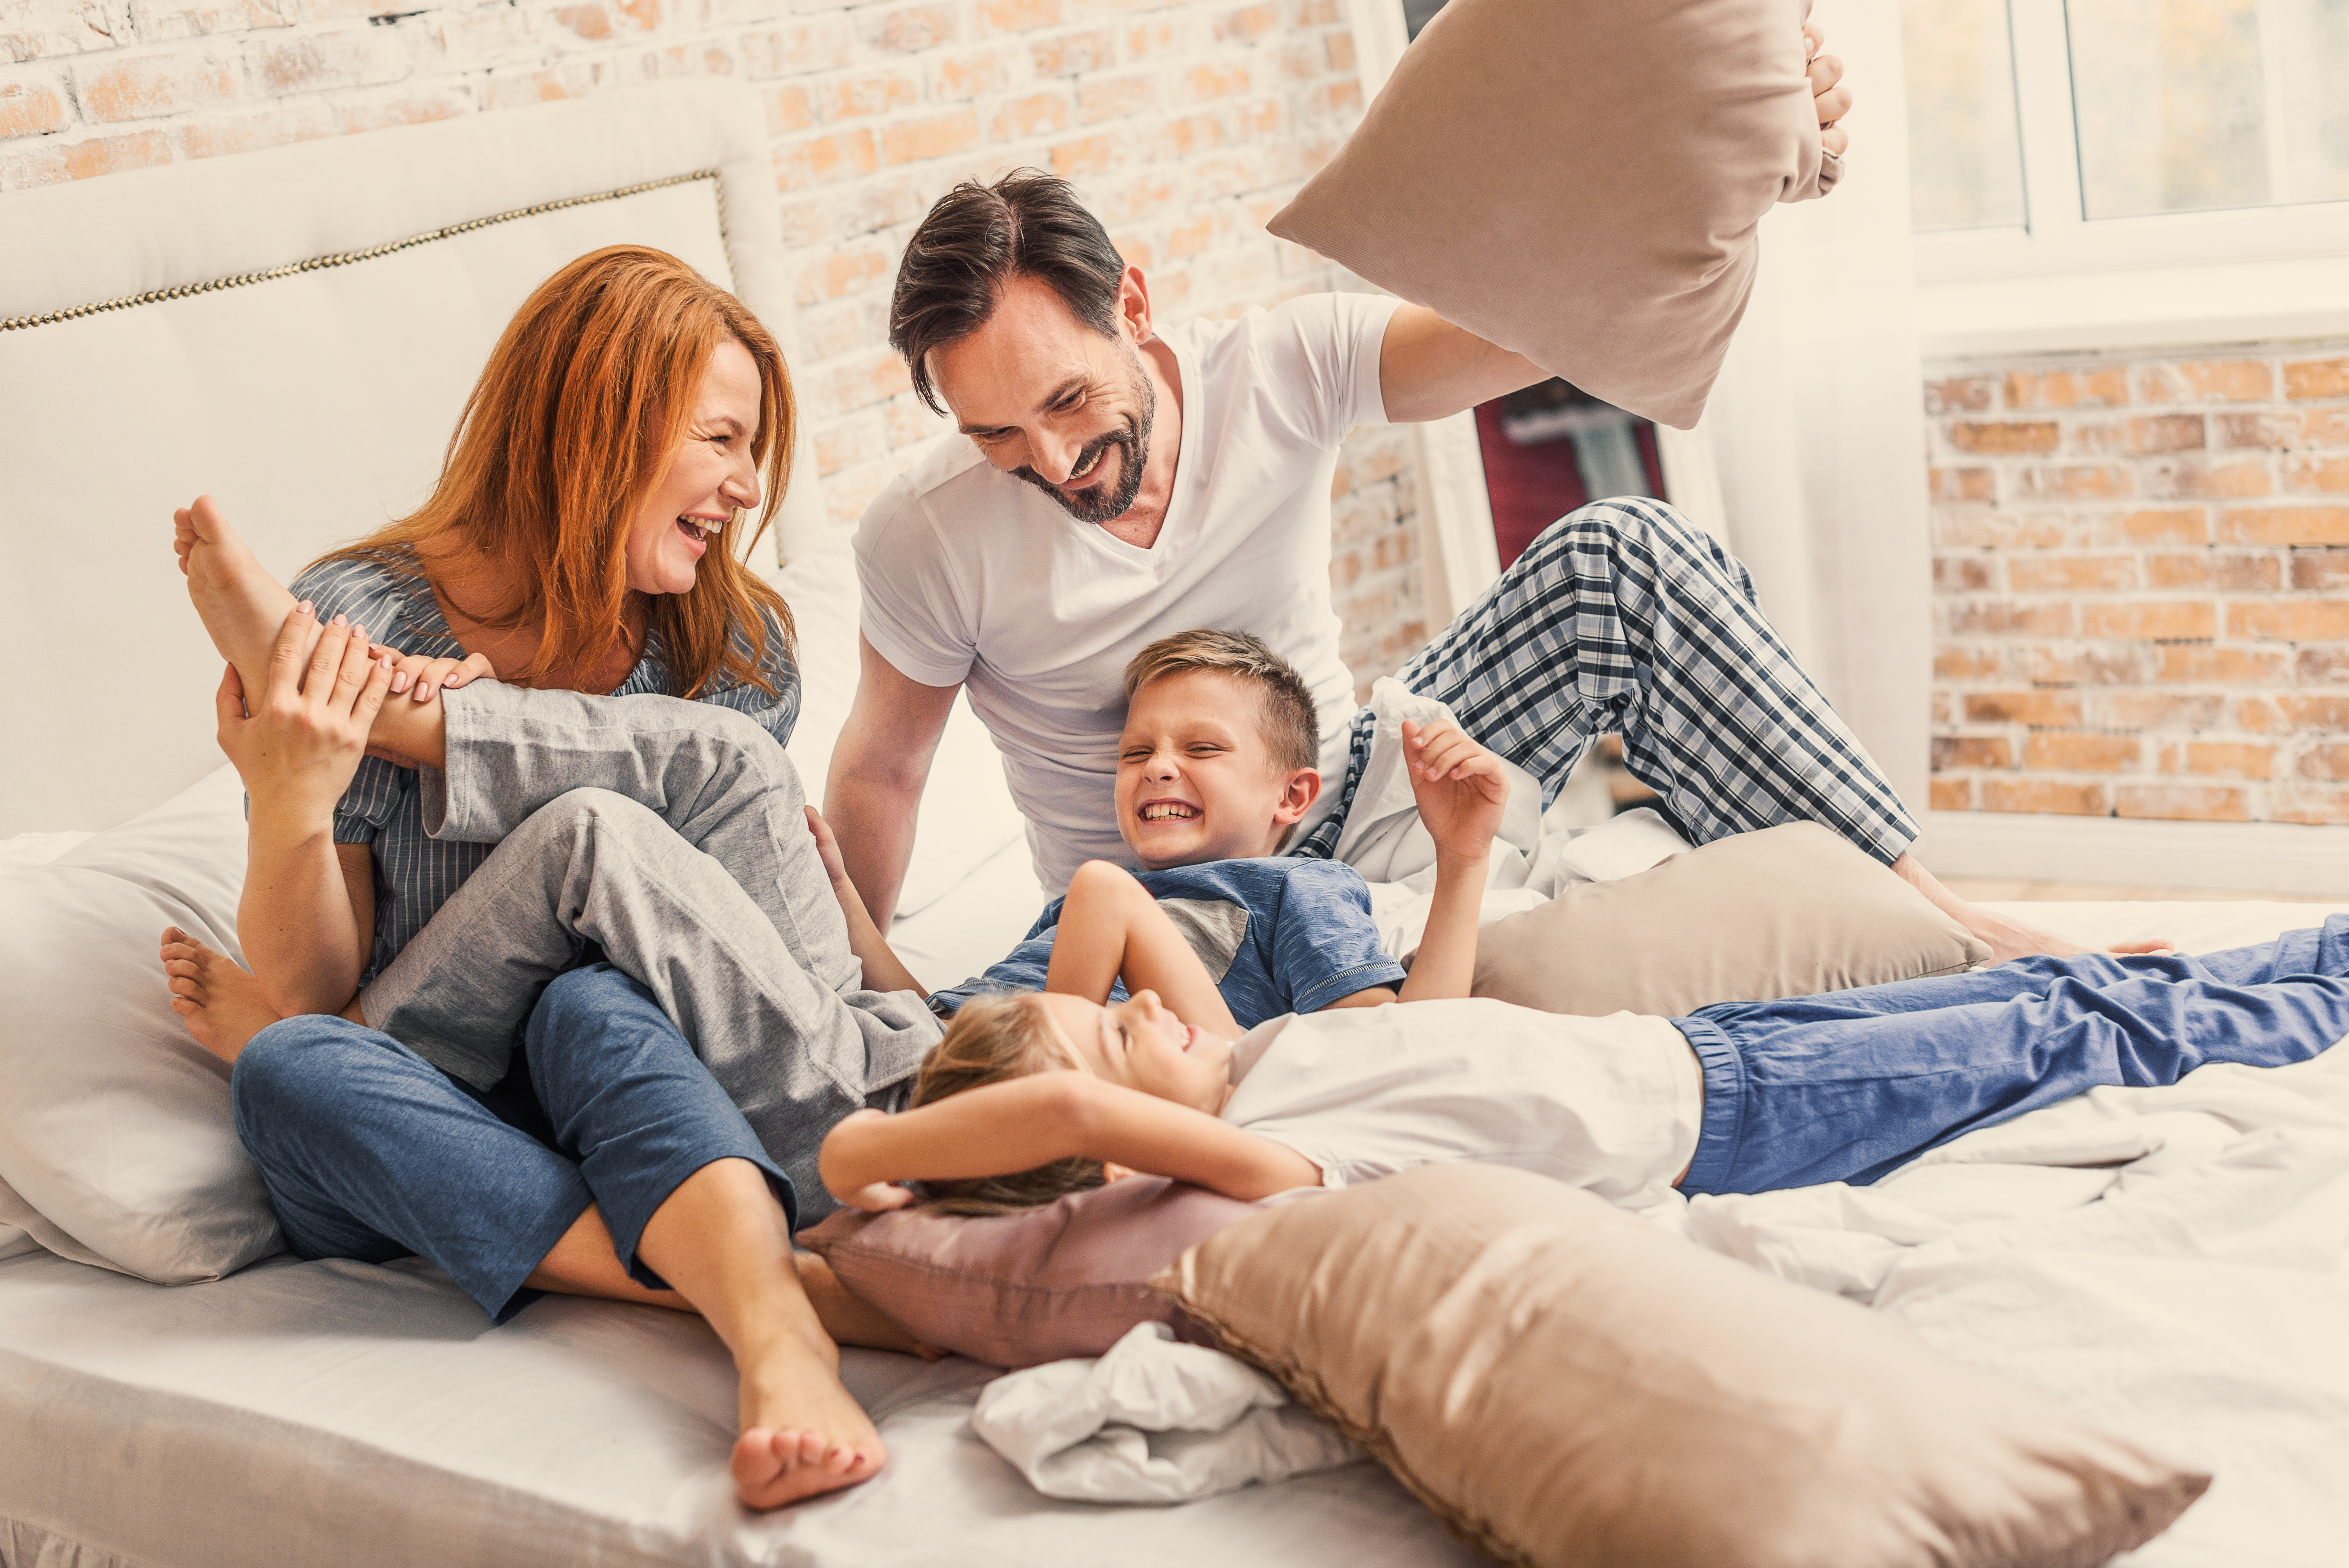 4 Ways to Balance Family Life as a Stay-at-Home Partner